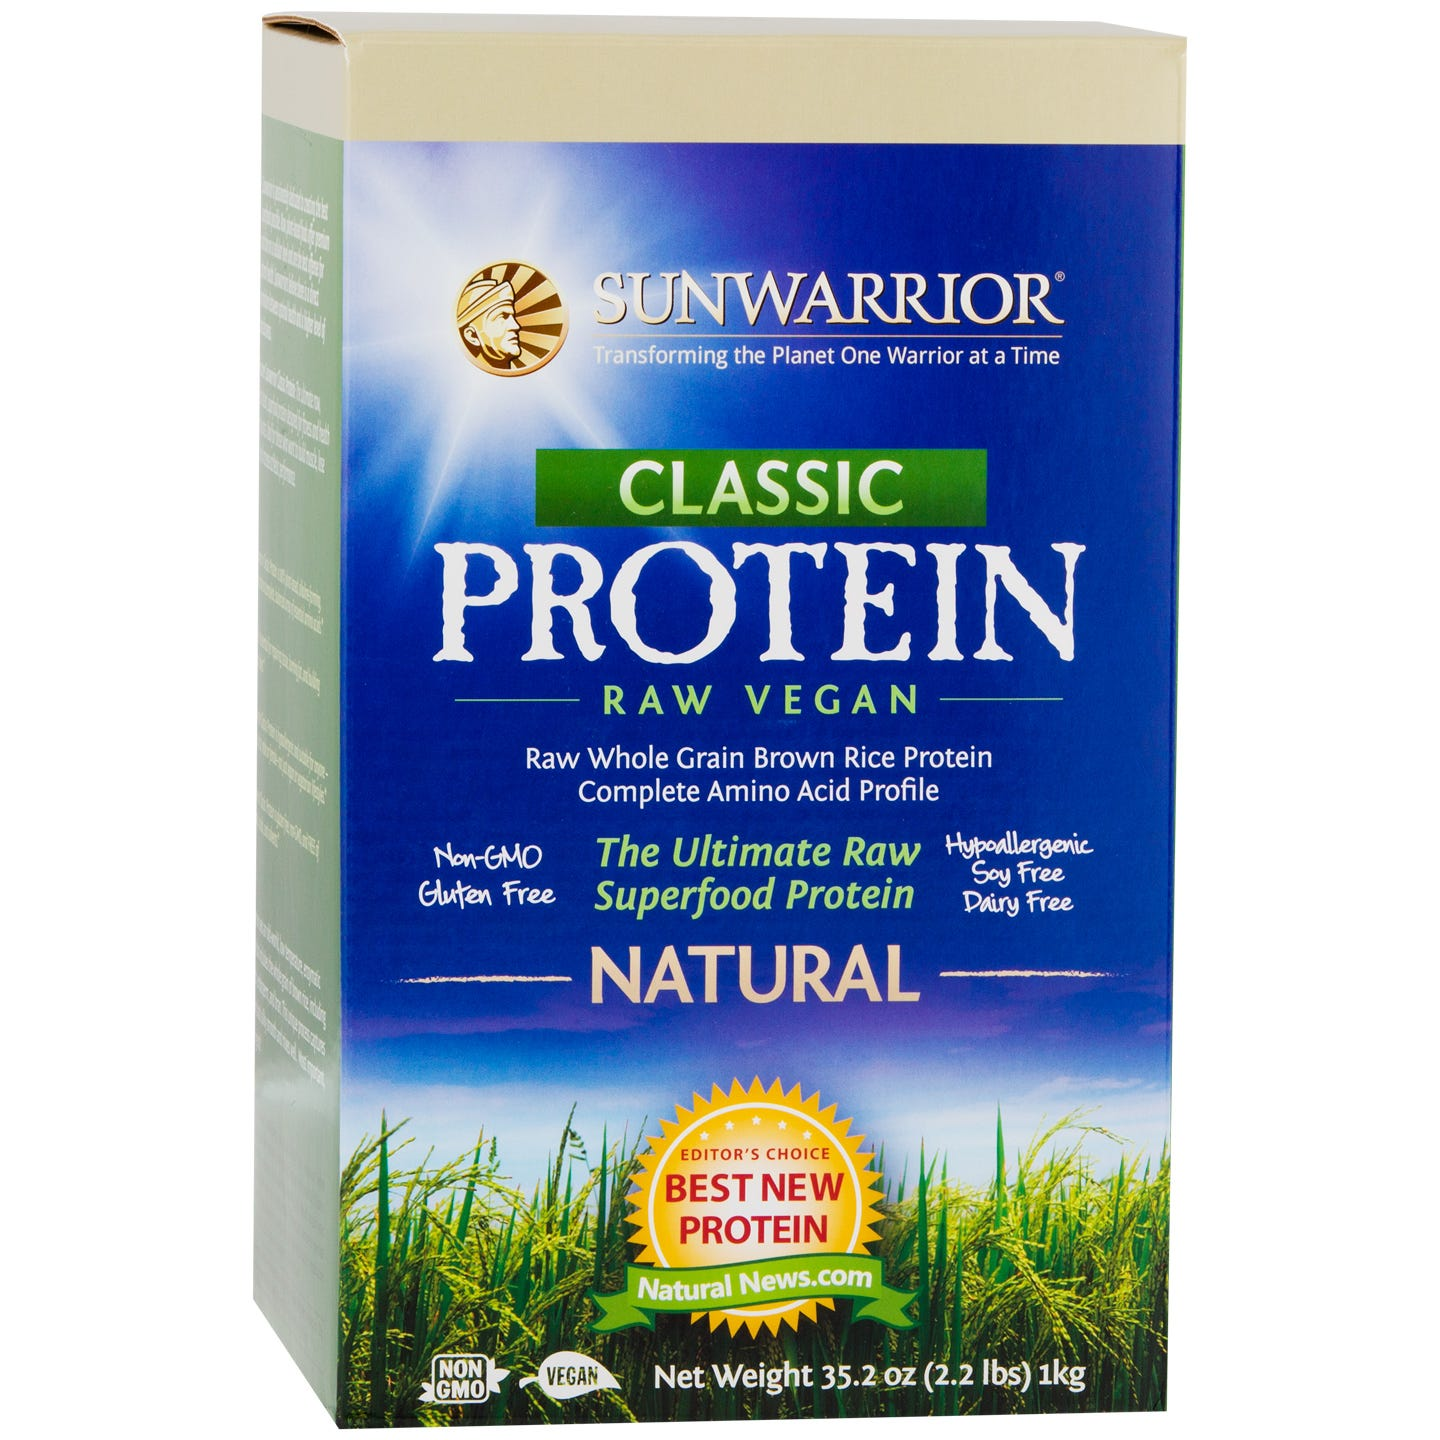 Classic Protein Natural 2.2lb, Sunwarrior - Rapid Diet Weight Loss Products Shop